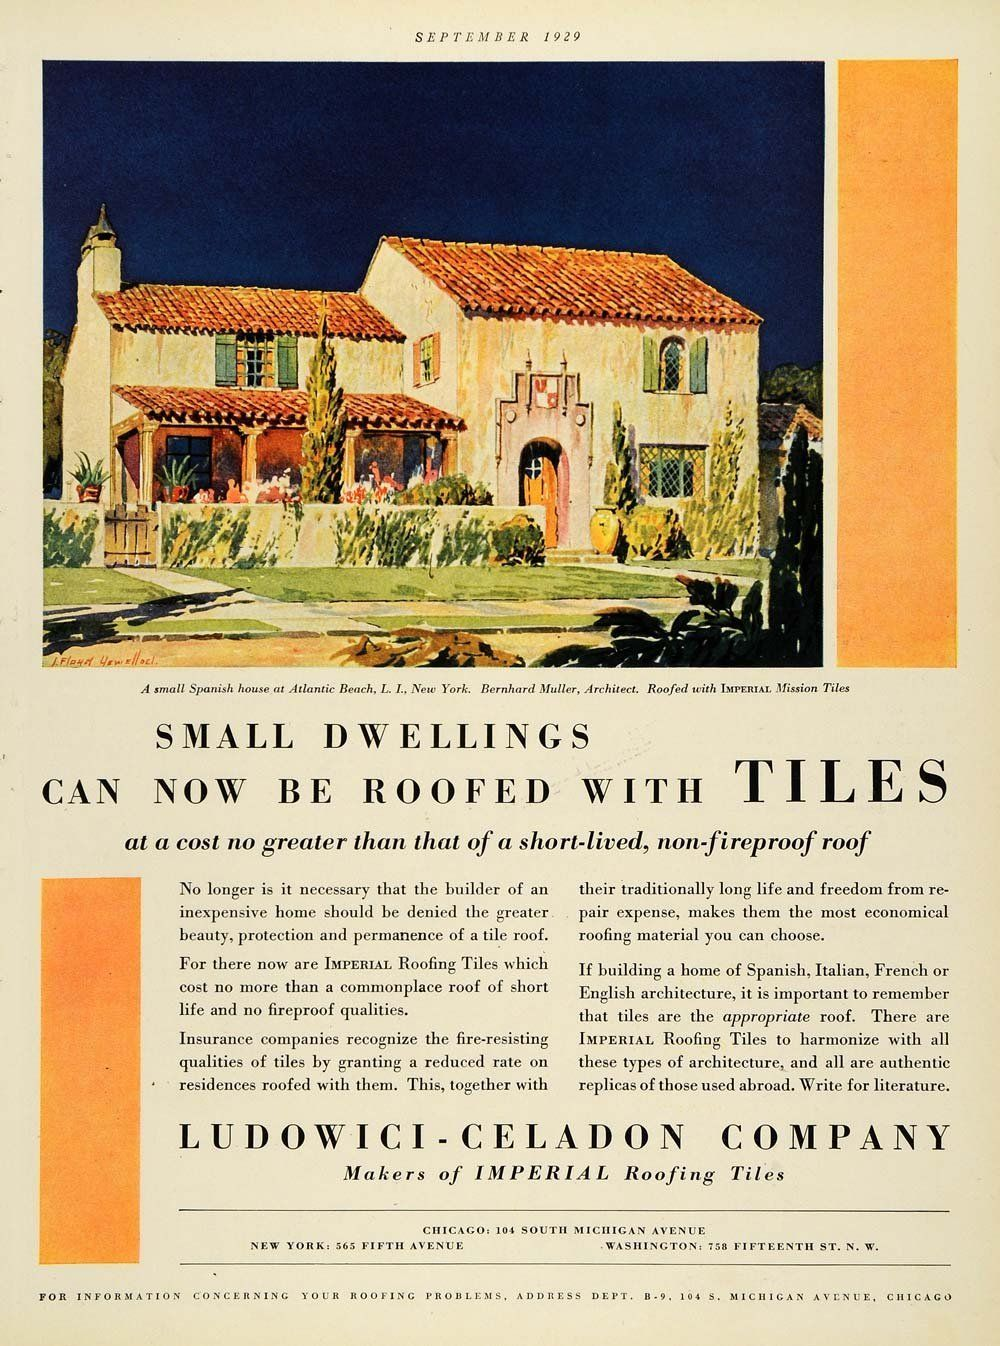 Small Dwelling Can Now Be Roofed With Tiles Vintage Print Ad For